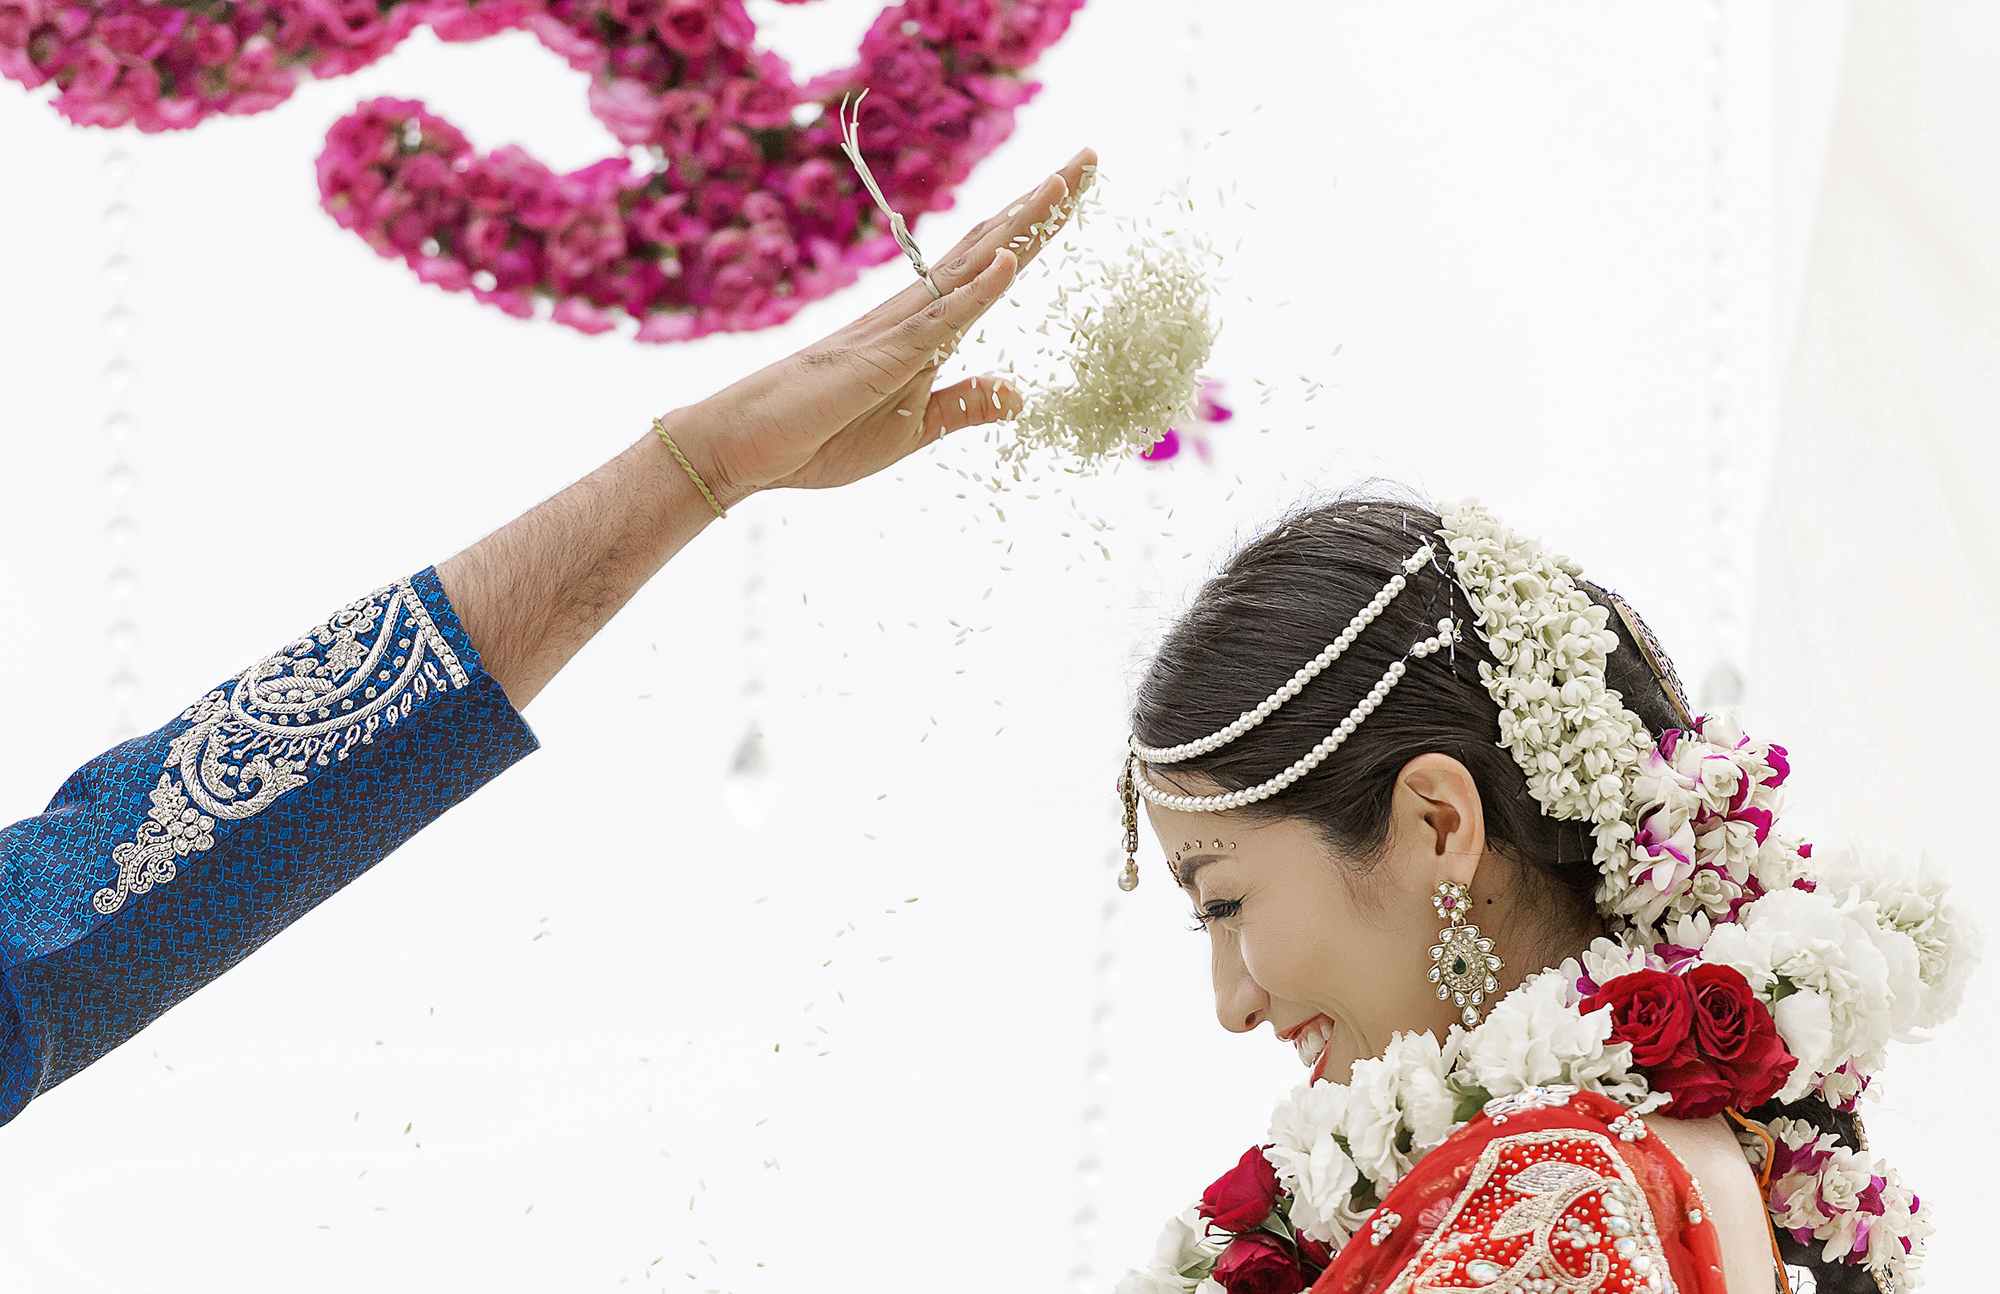 Rice thrown on bride's head during ceremony - photo by 37 Frames - Japan